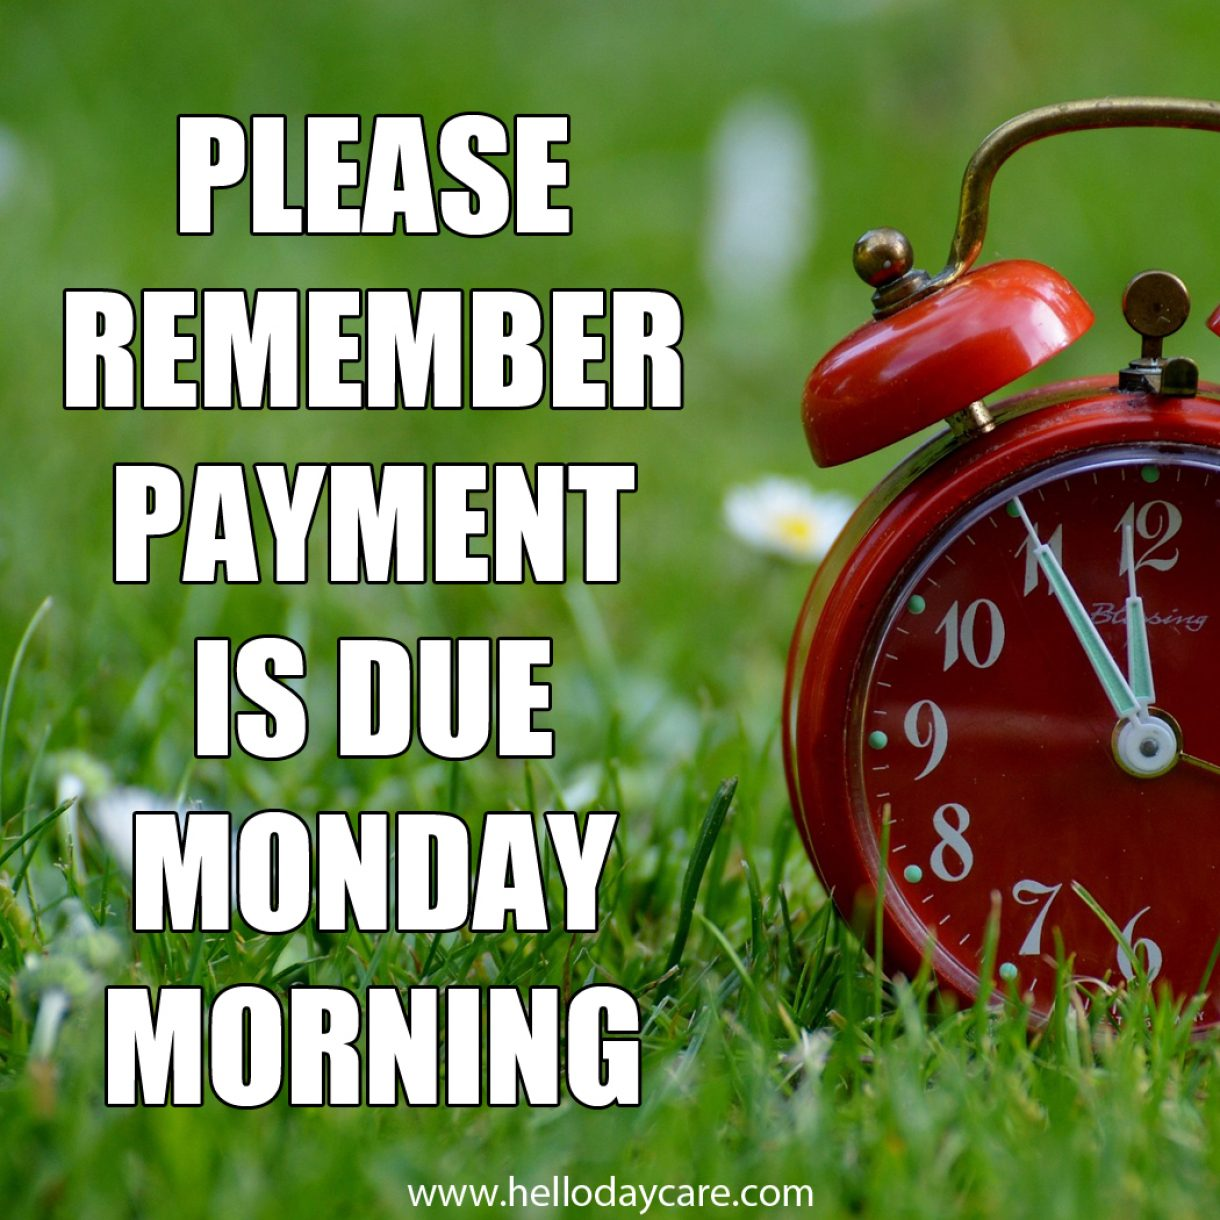 Please remember payment is due Monday morning